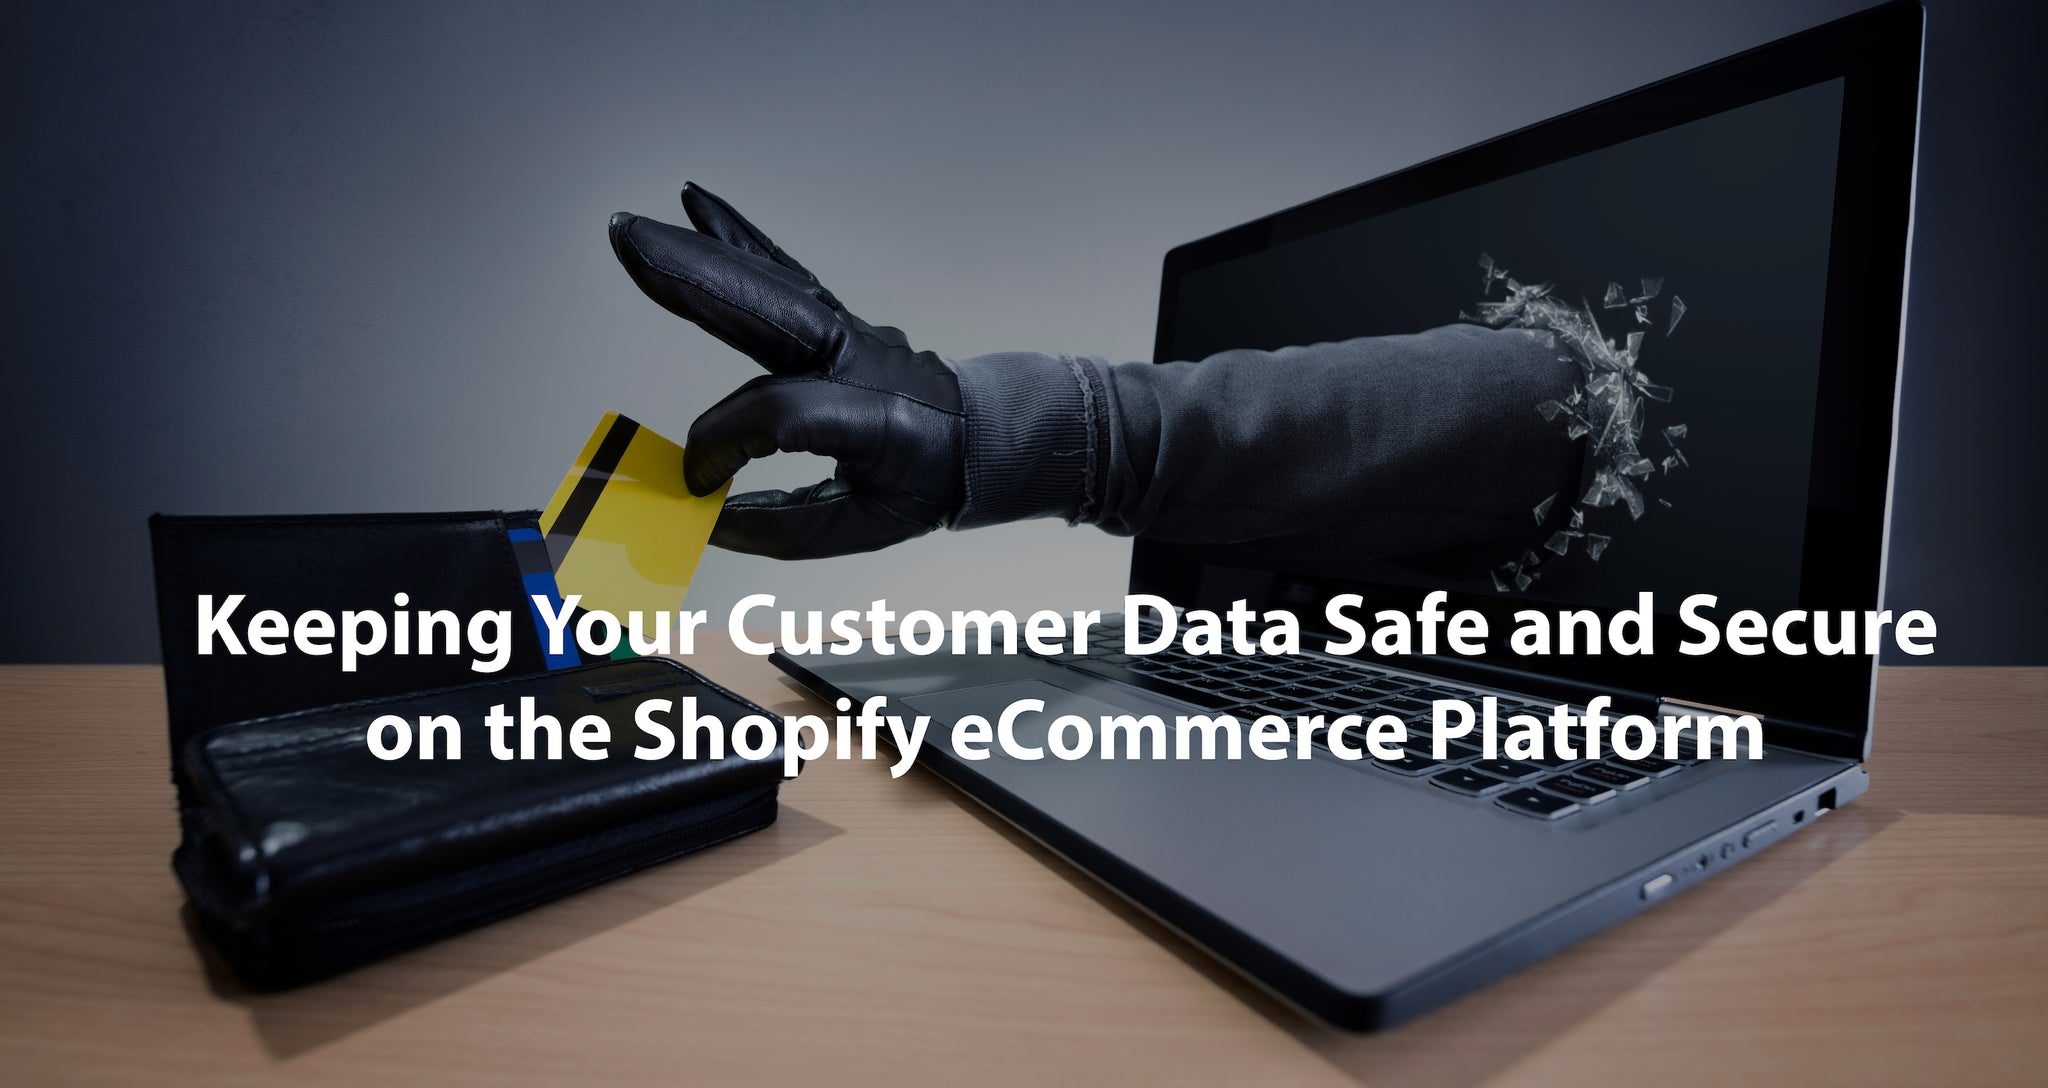 Keeping Customer Data Safe and Secure on the Shopify